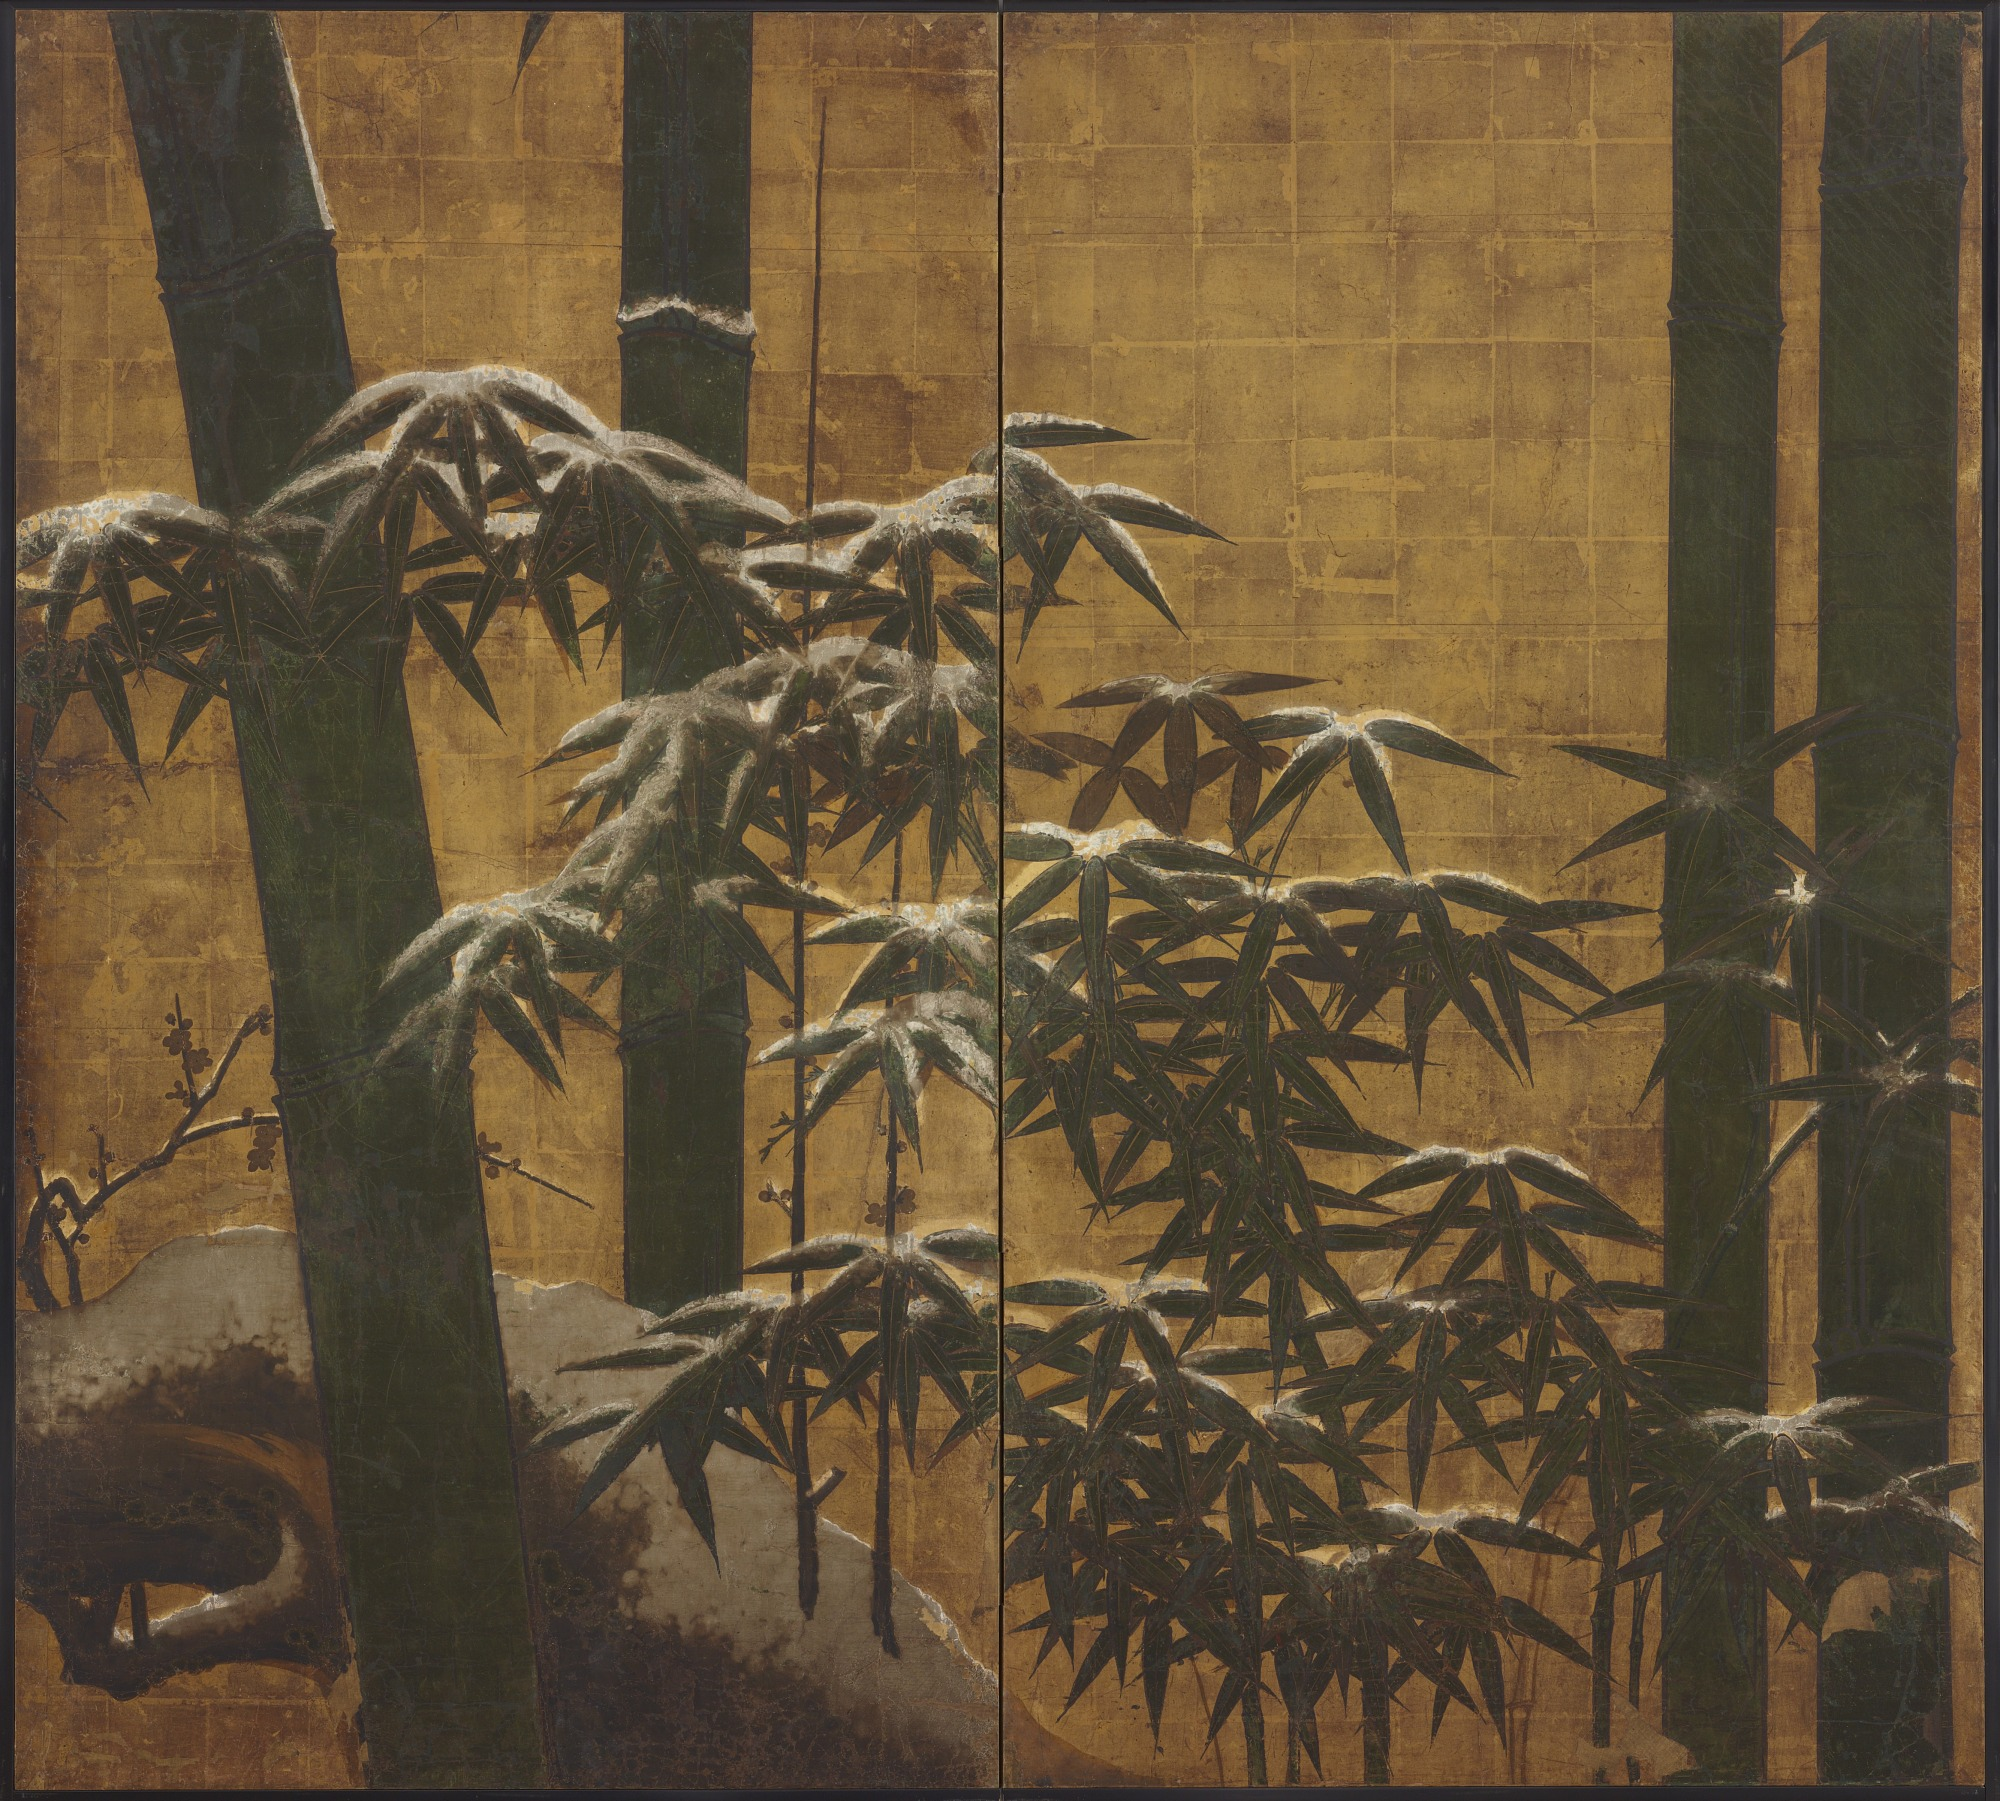 Snow-laden bamboos and plum blossoms of early spring